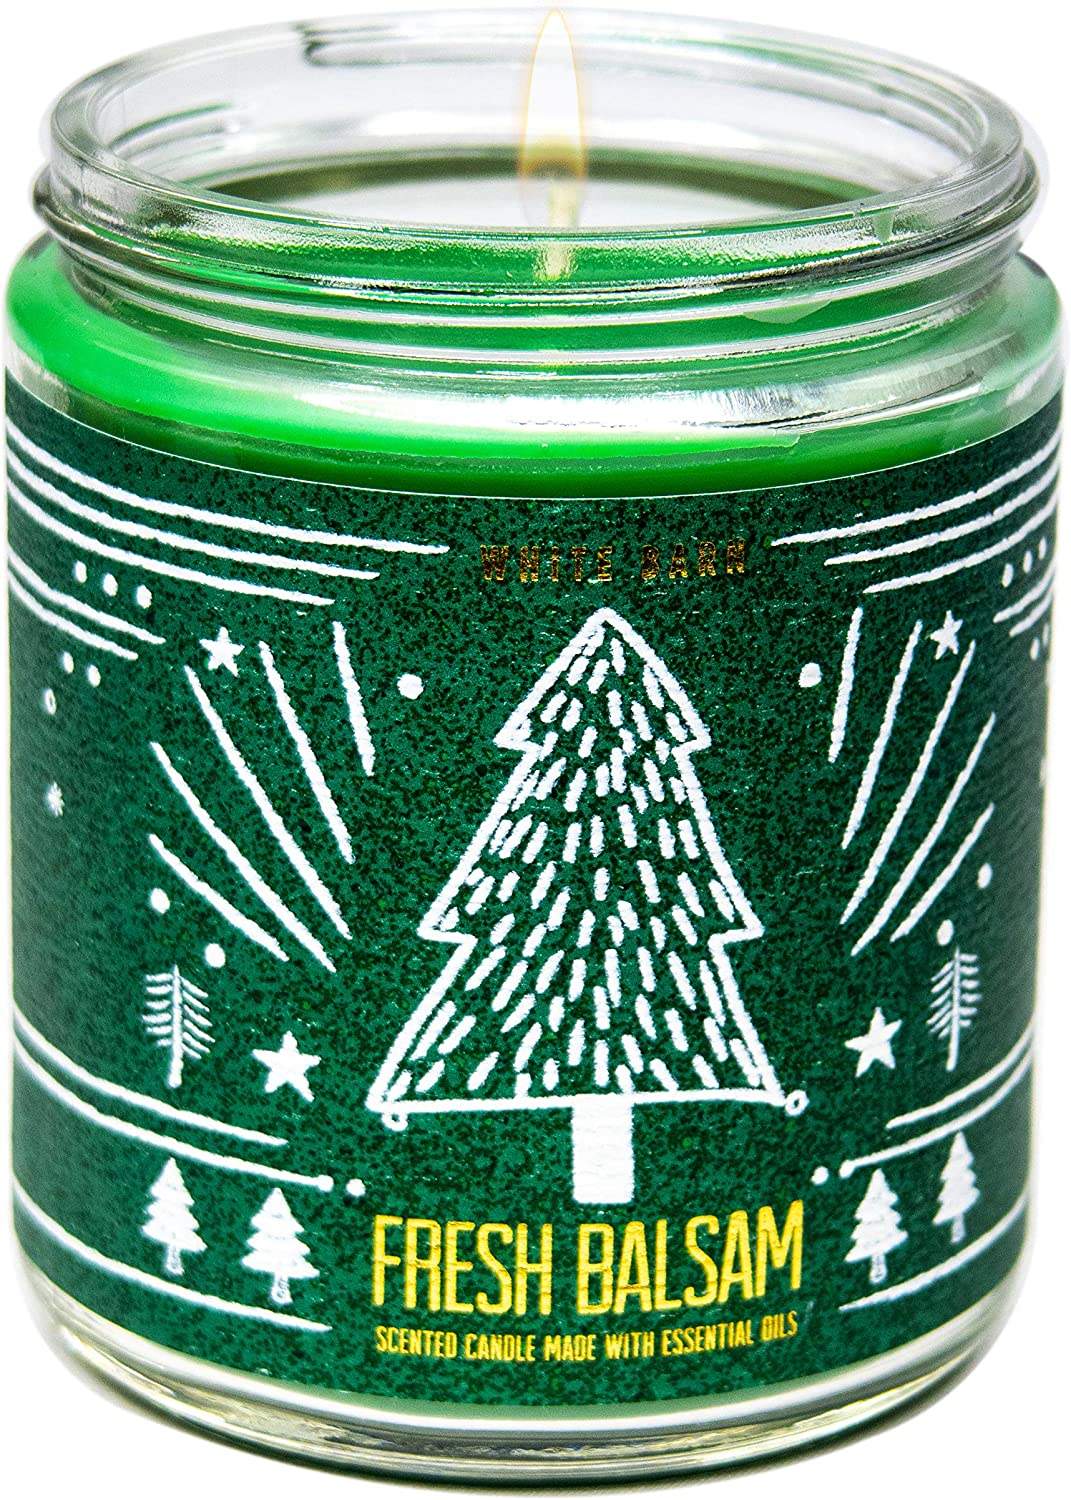 White Barn Bath and Body Works, 1-Wick Candle w/Essential Oils - 7 oz - 2020 Holidays Scents! (Fresh Balsam)